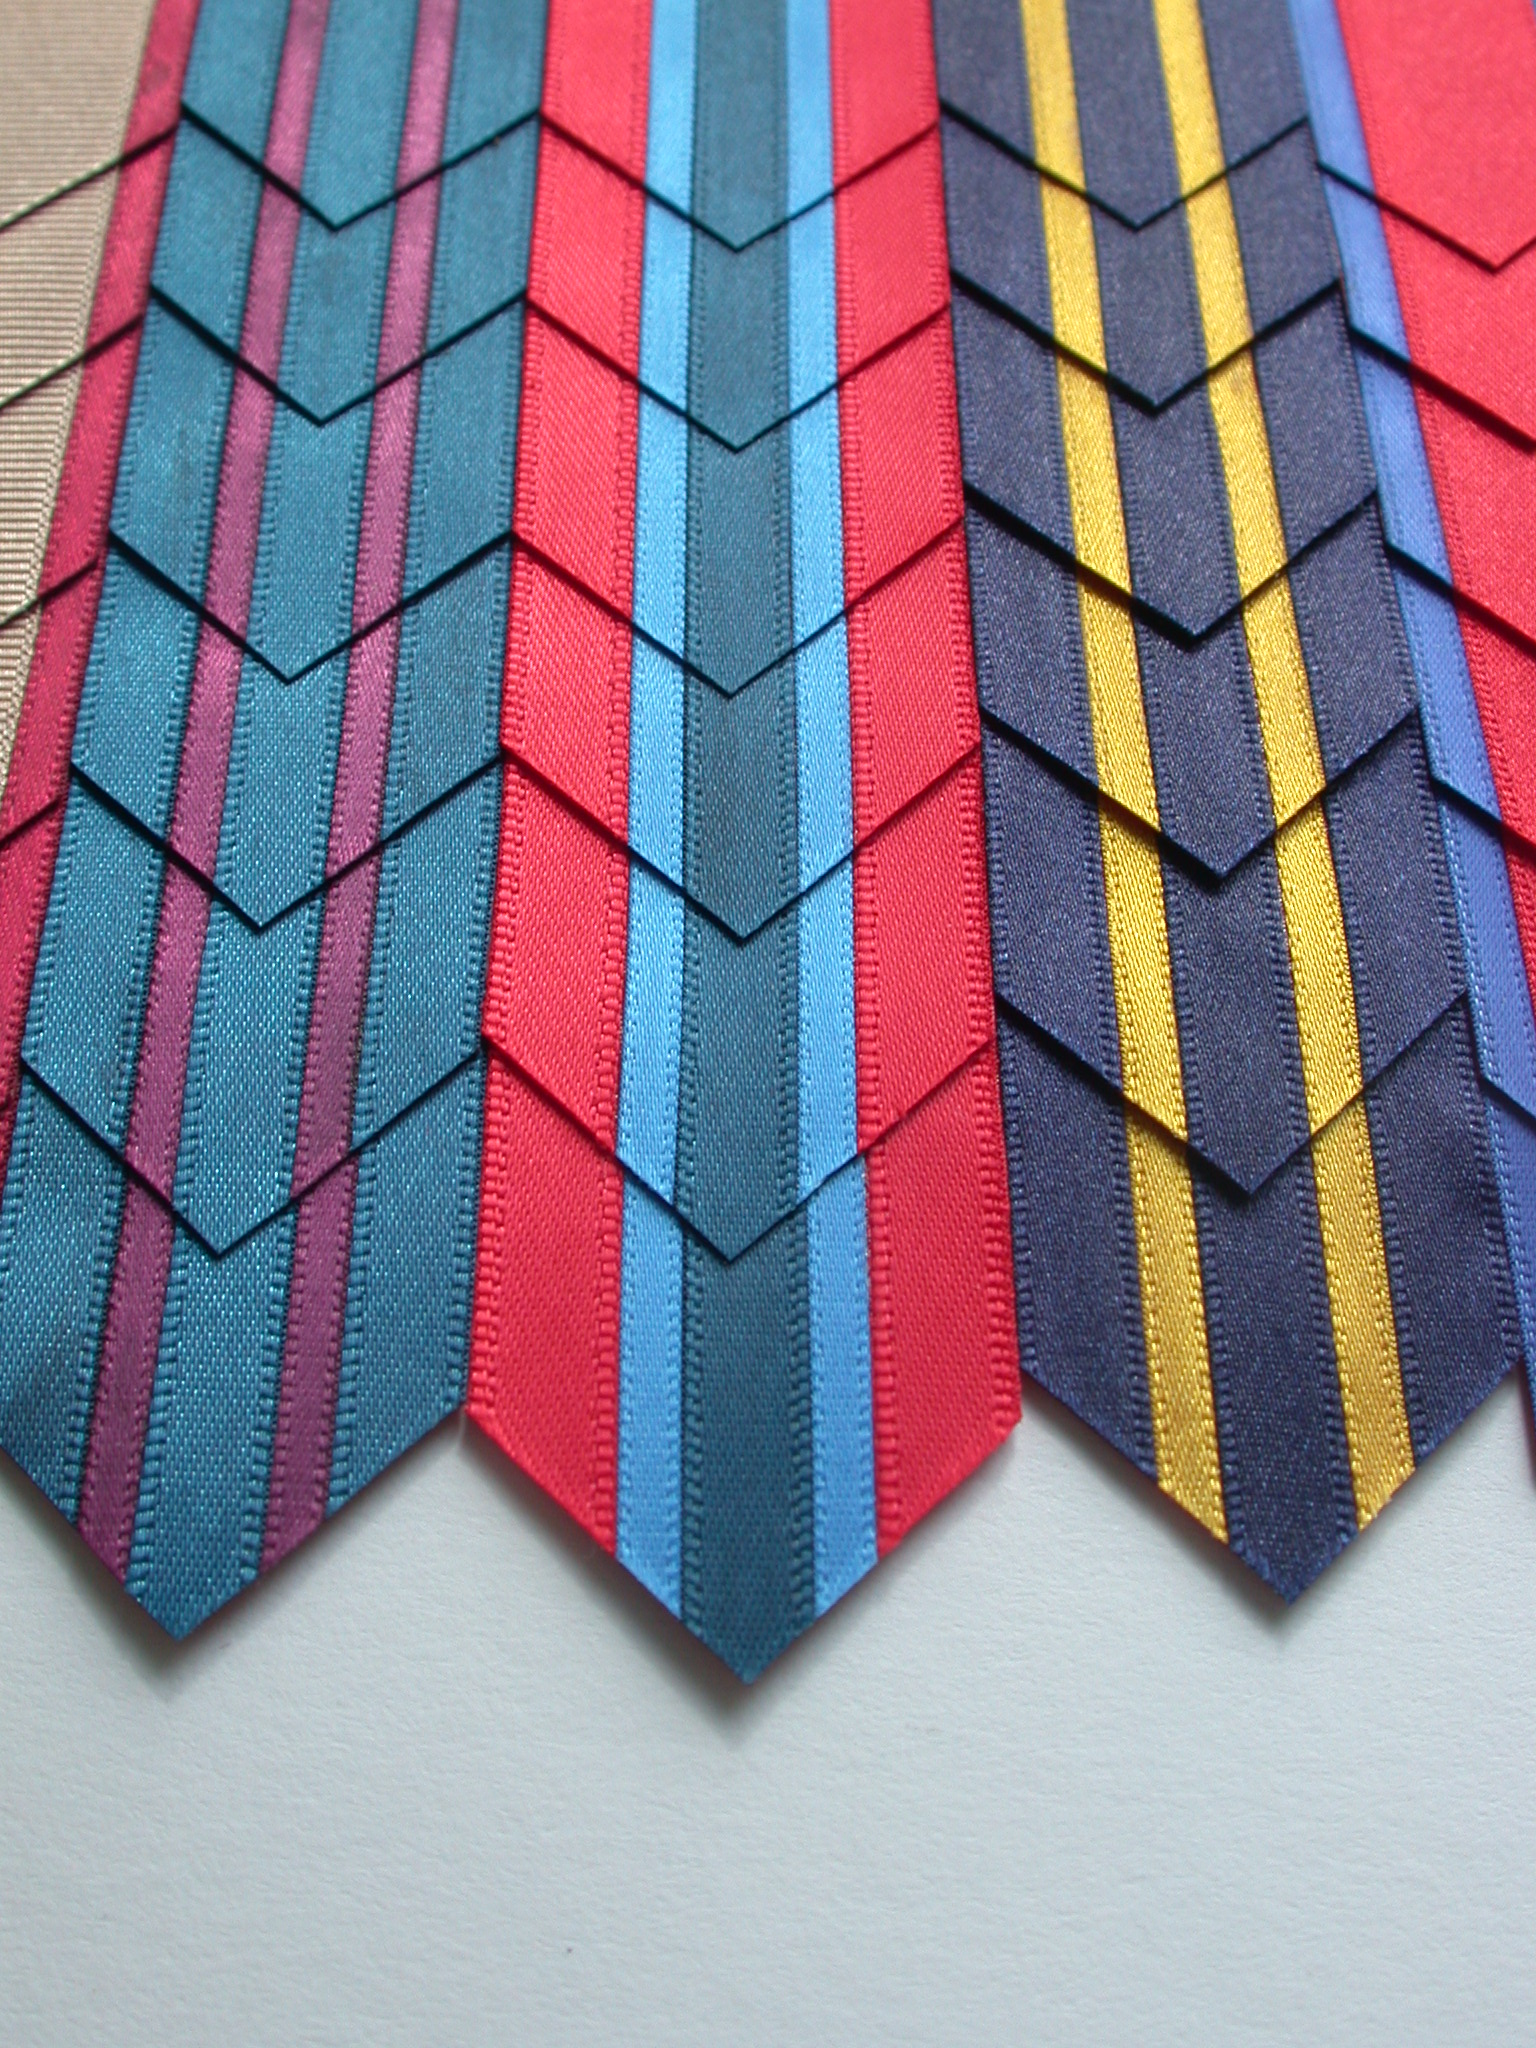 Ribbon Composition (RCA Project), 2008